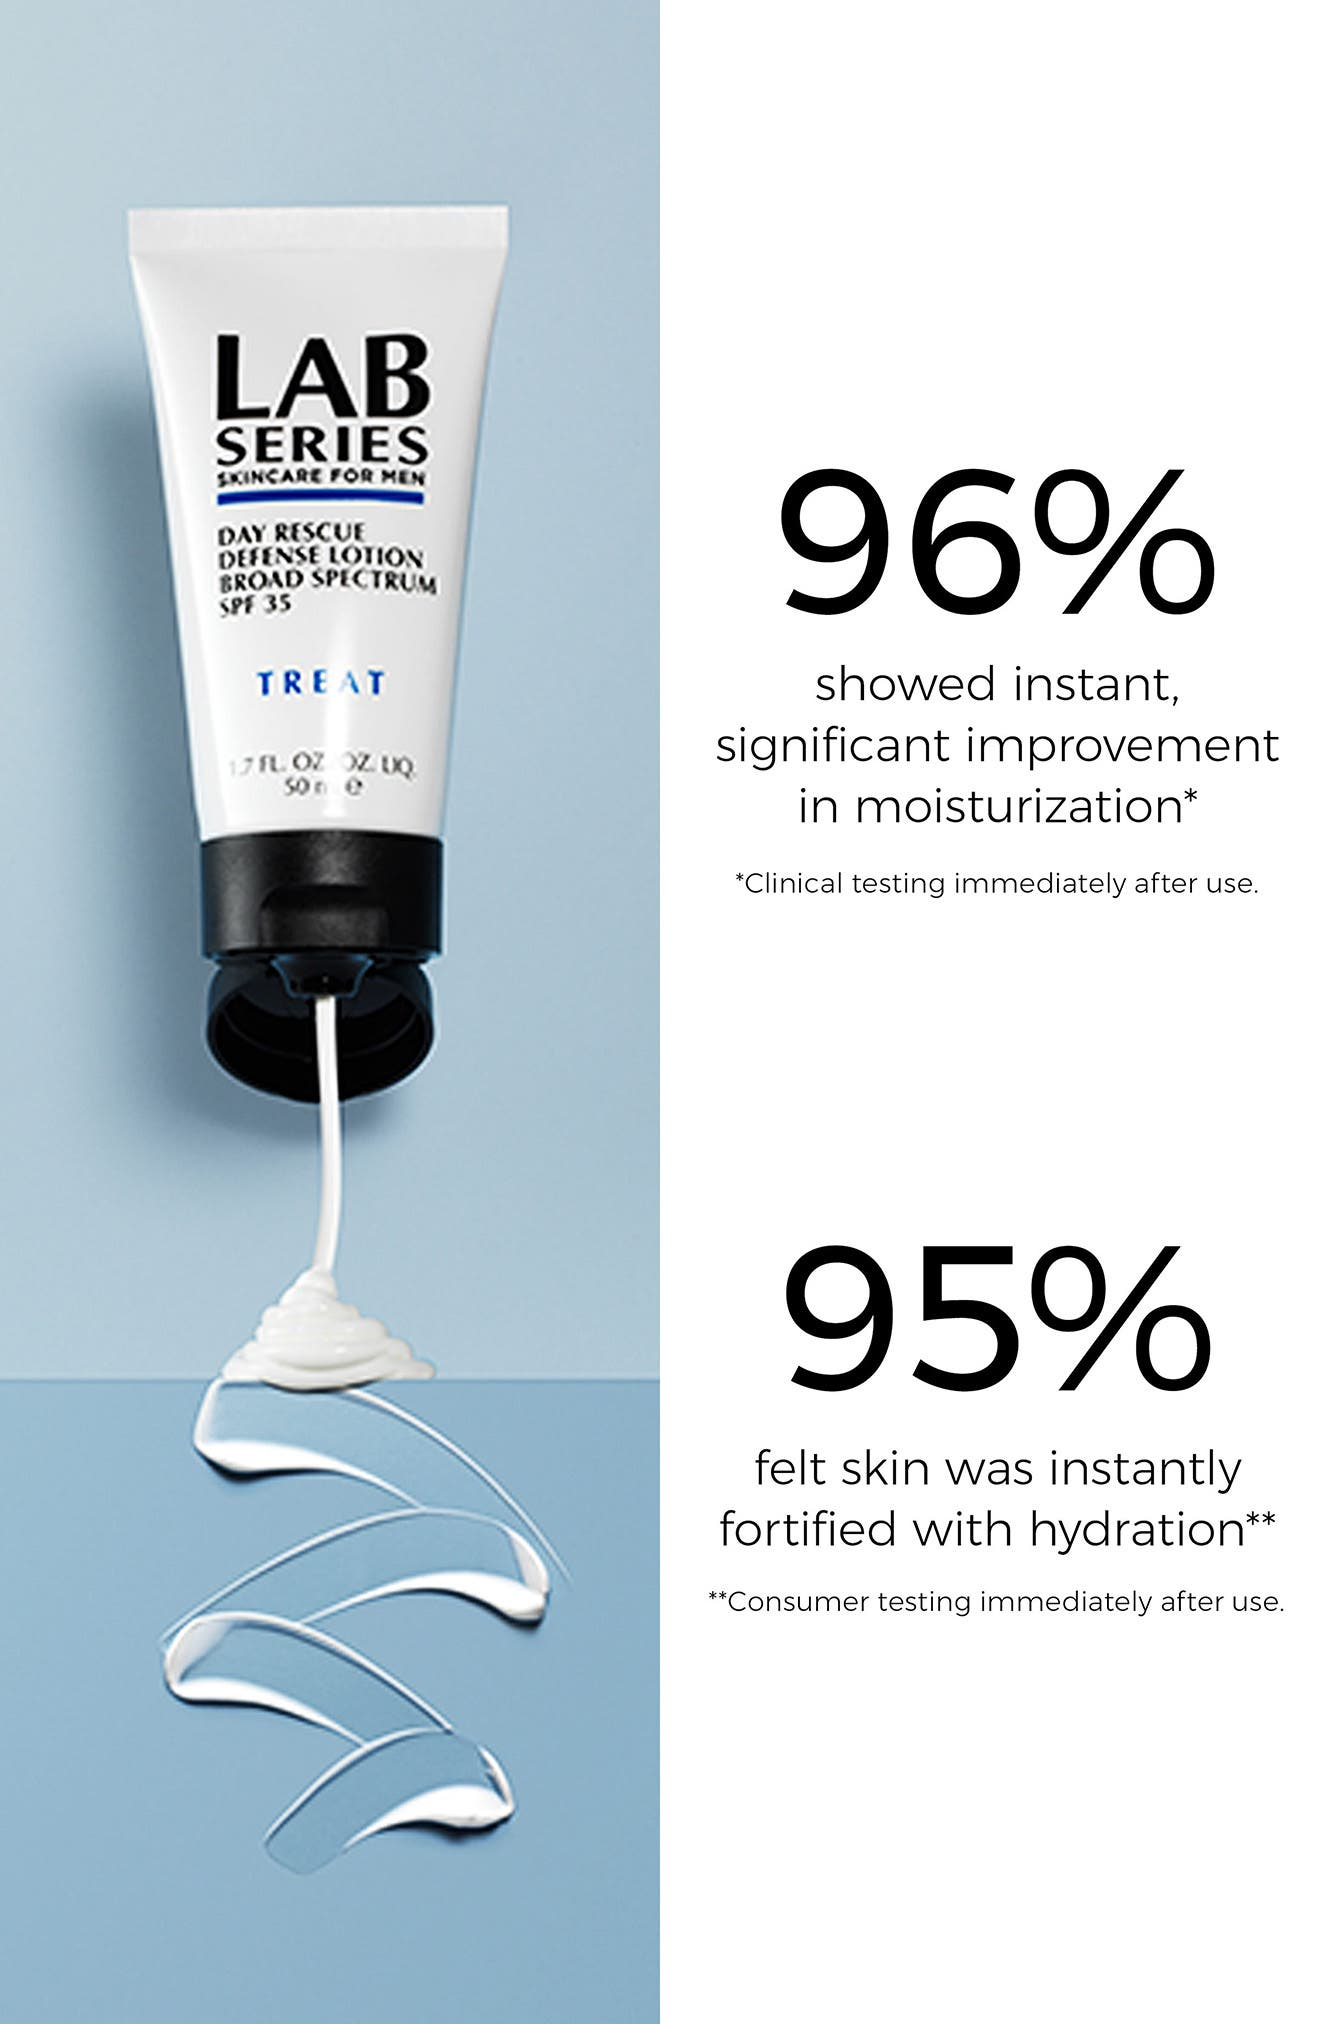 LAB SERIES SKINCARE FOR MEN,                             Day Rescue Defense Lotion Broad Spectrum SPF 35,                             Alternate thumbnail 2, color,                             NO COLOR